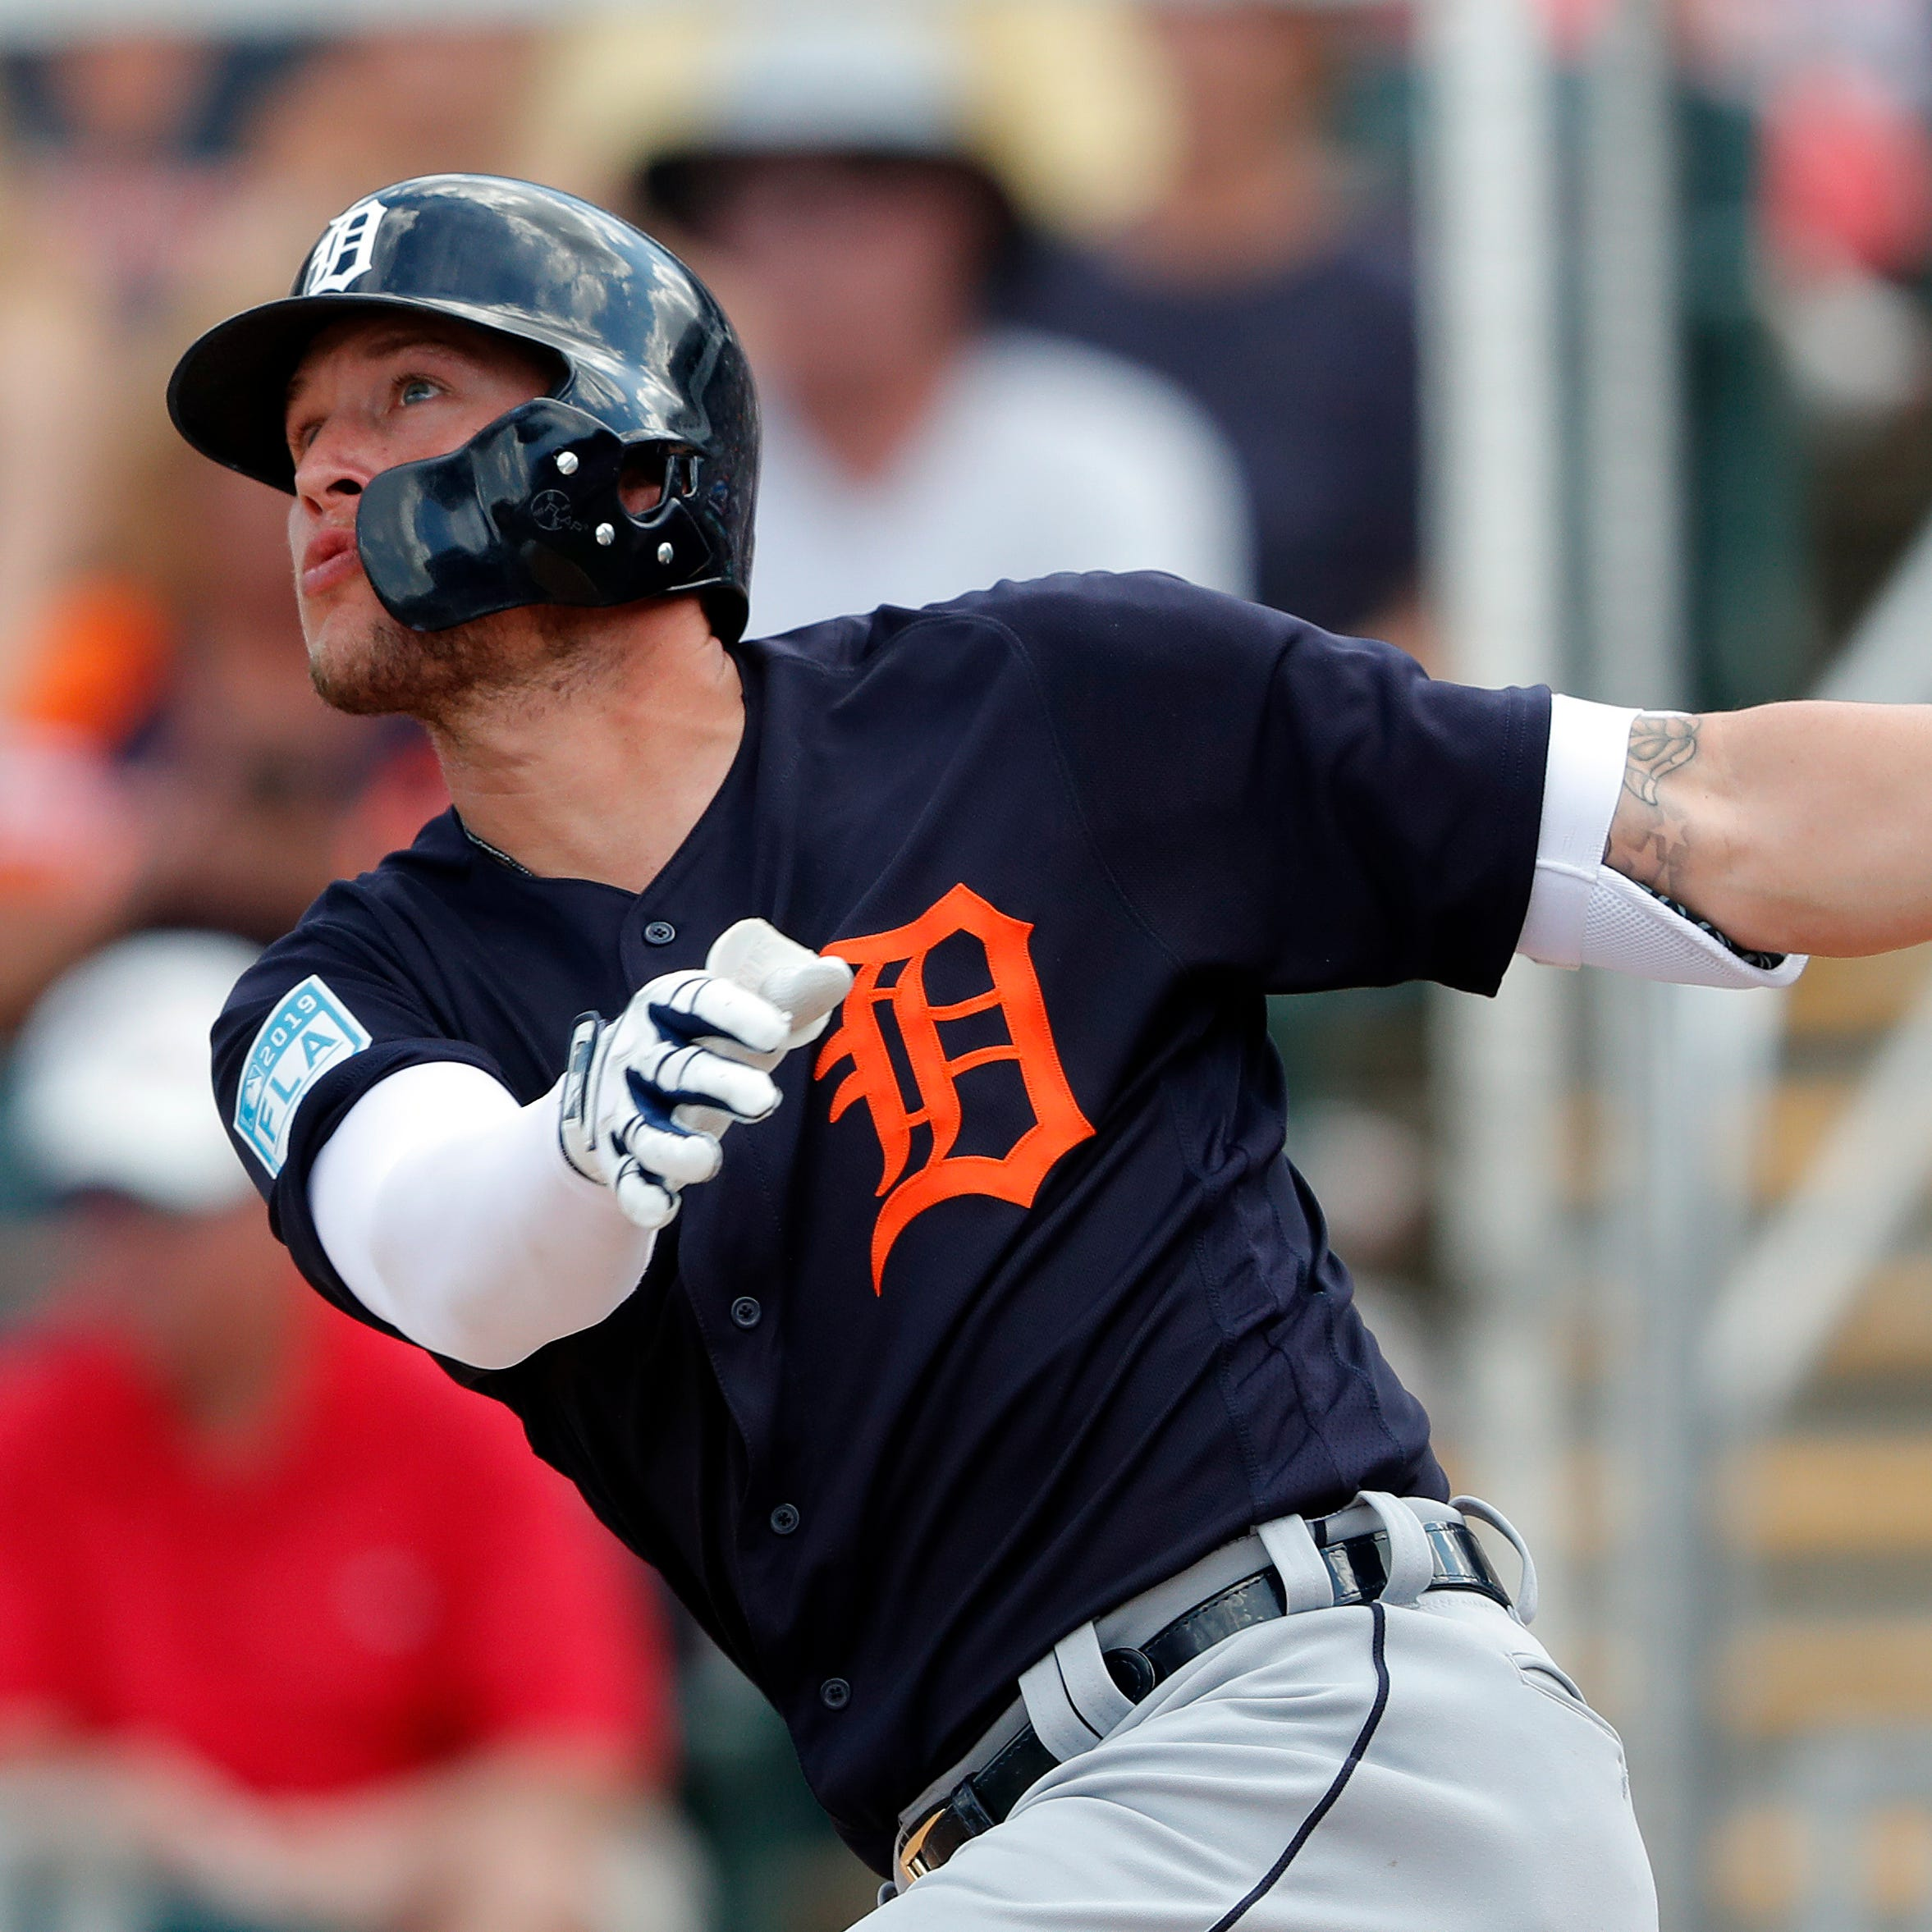 Detroit Tigers DFA Mikie Mahtook to make room for JaCoby Jones